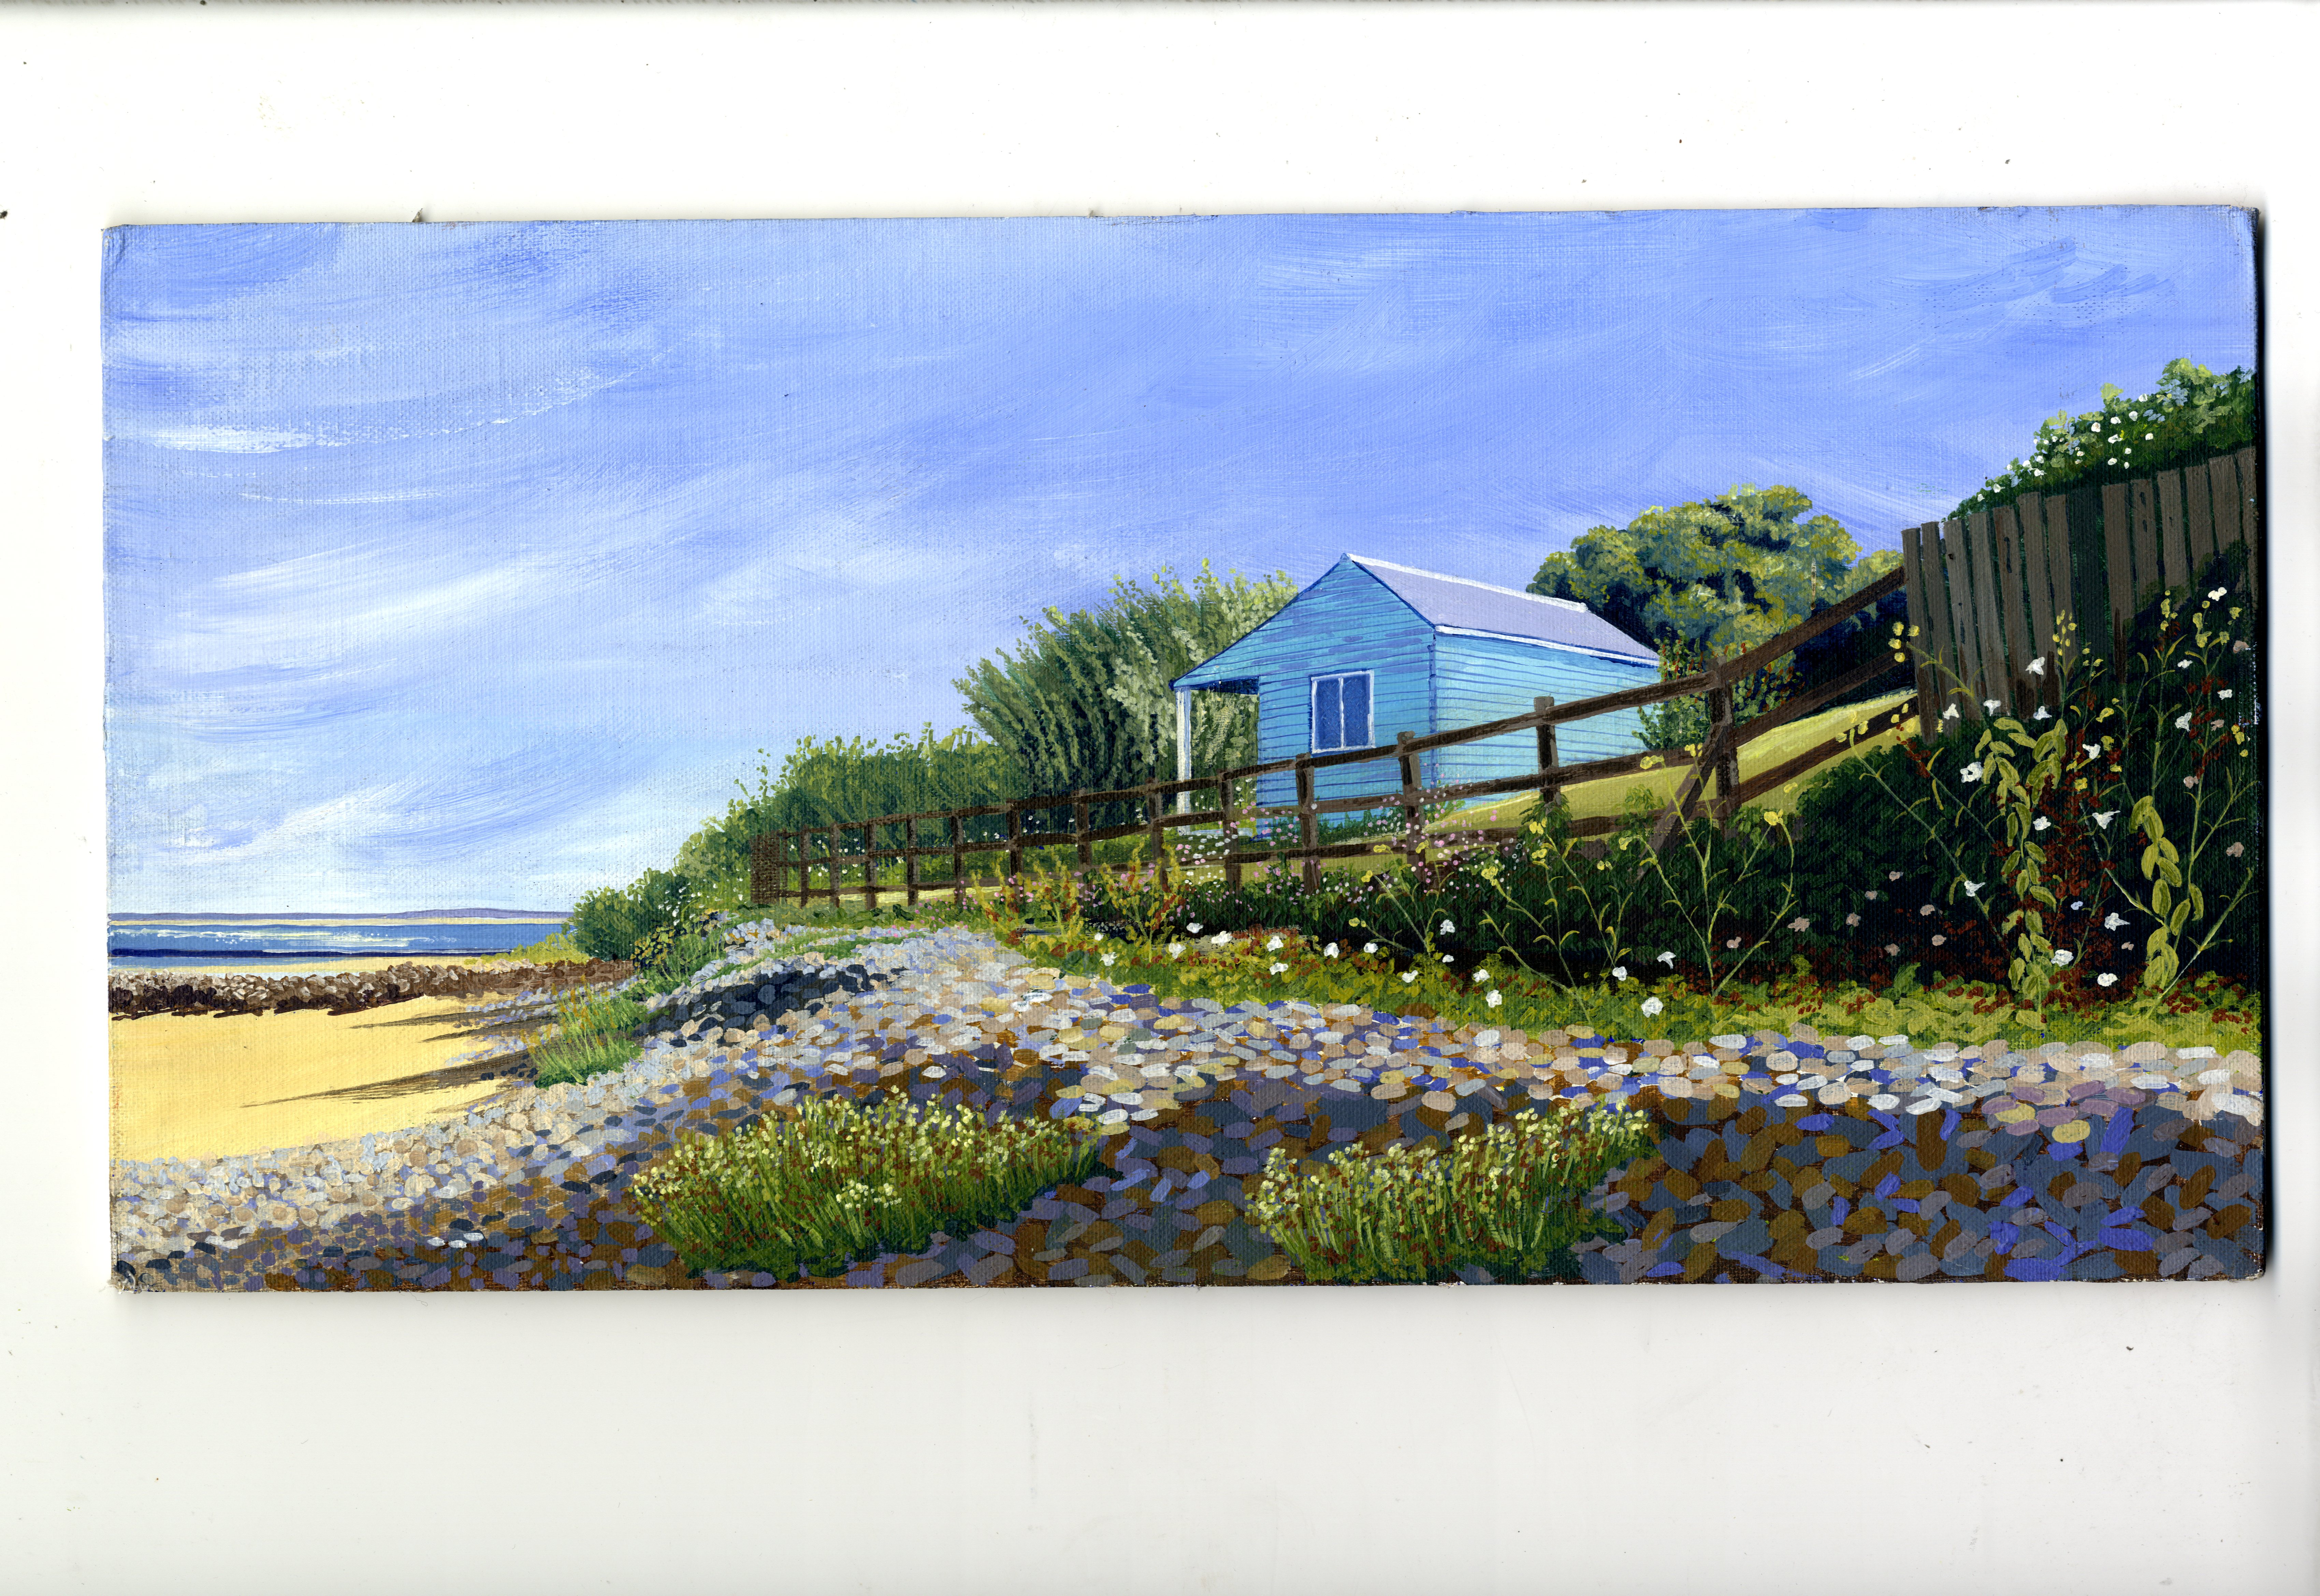 Alnmouth Beach - Bridget March - limited edition print  - 25 x 12 - $40